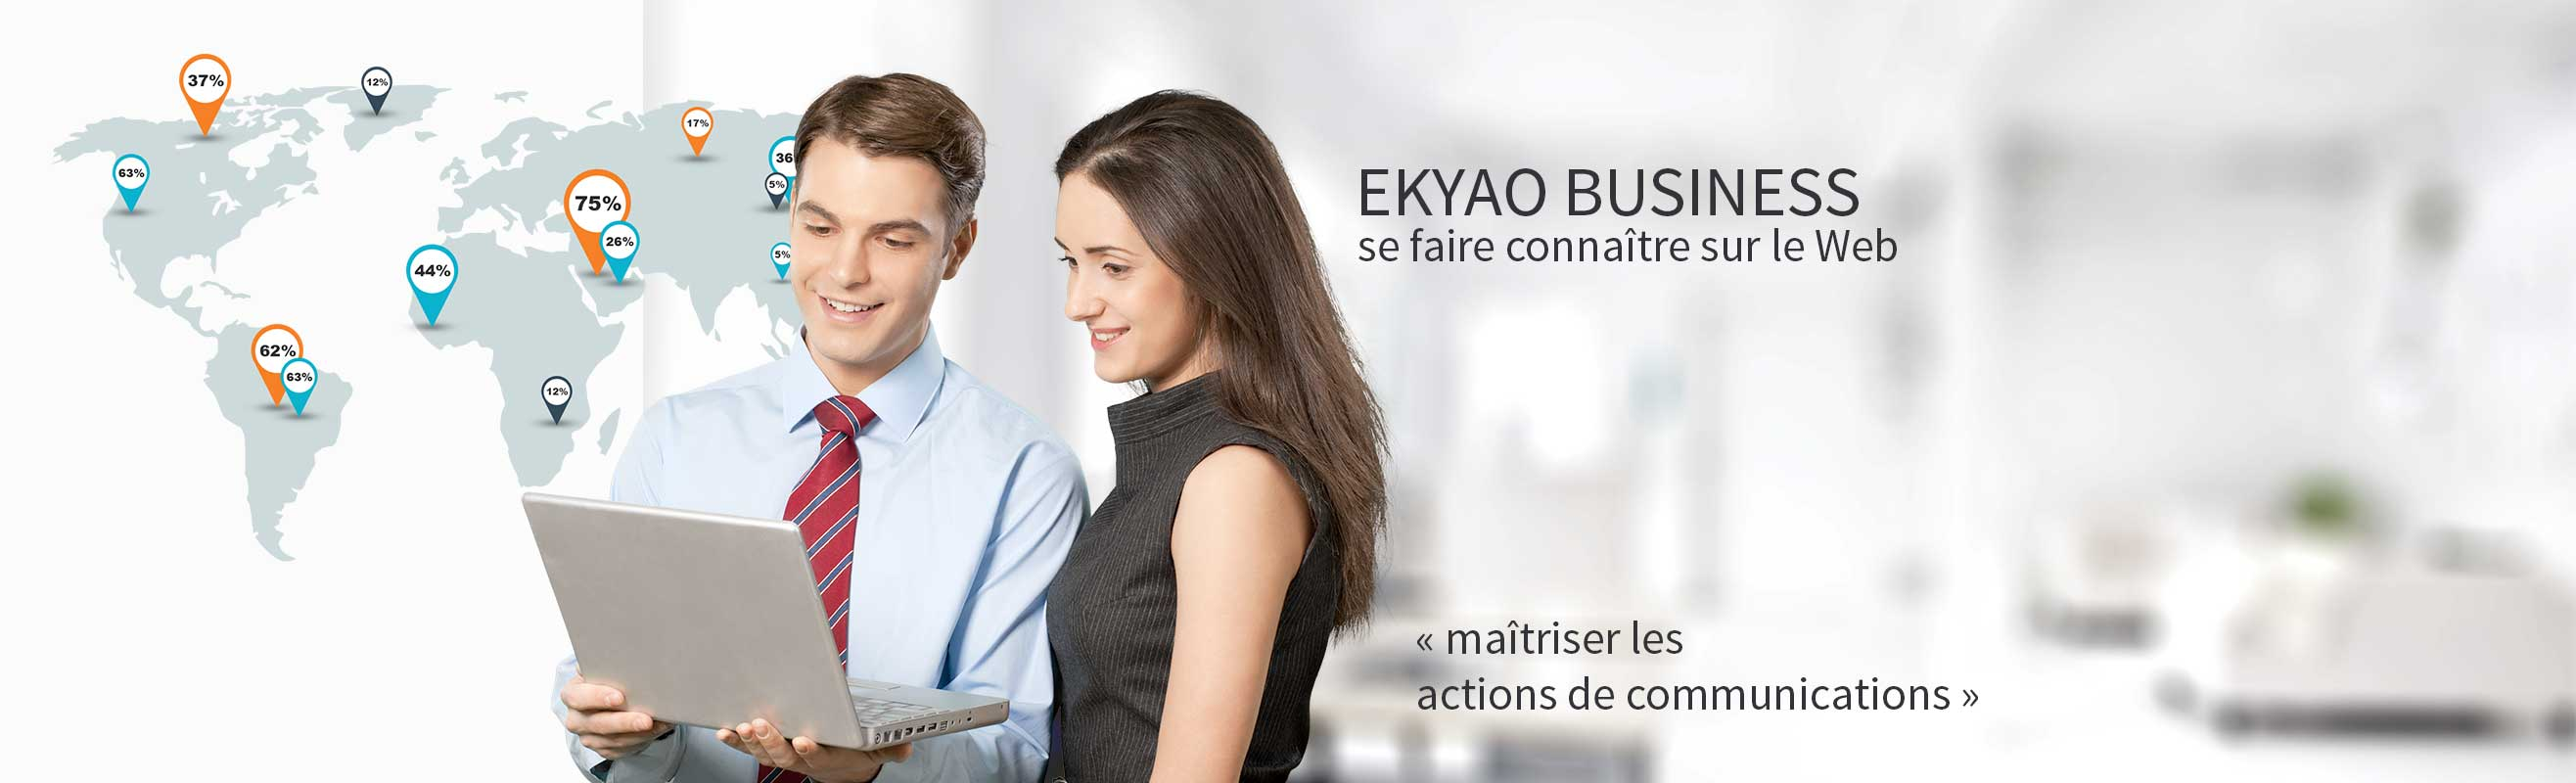 Ekyao Business Print-Marketing. Maîtriser les actions de communication